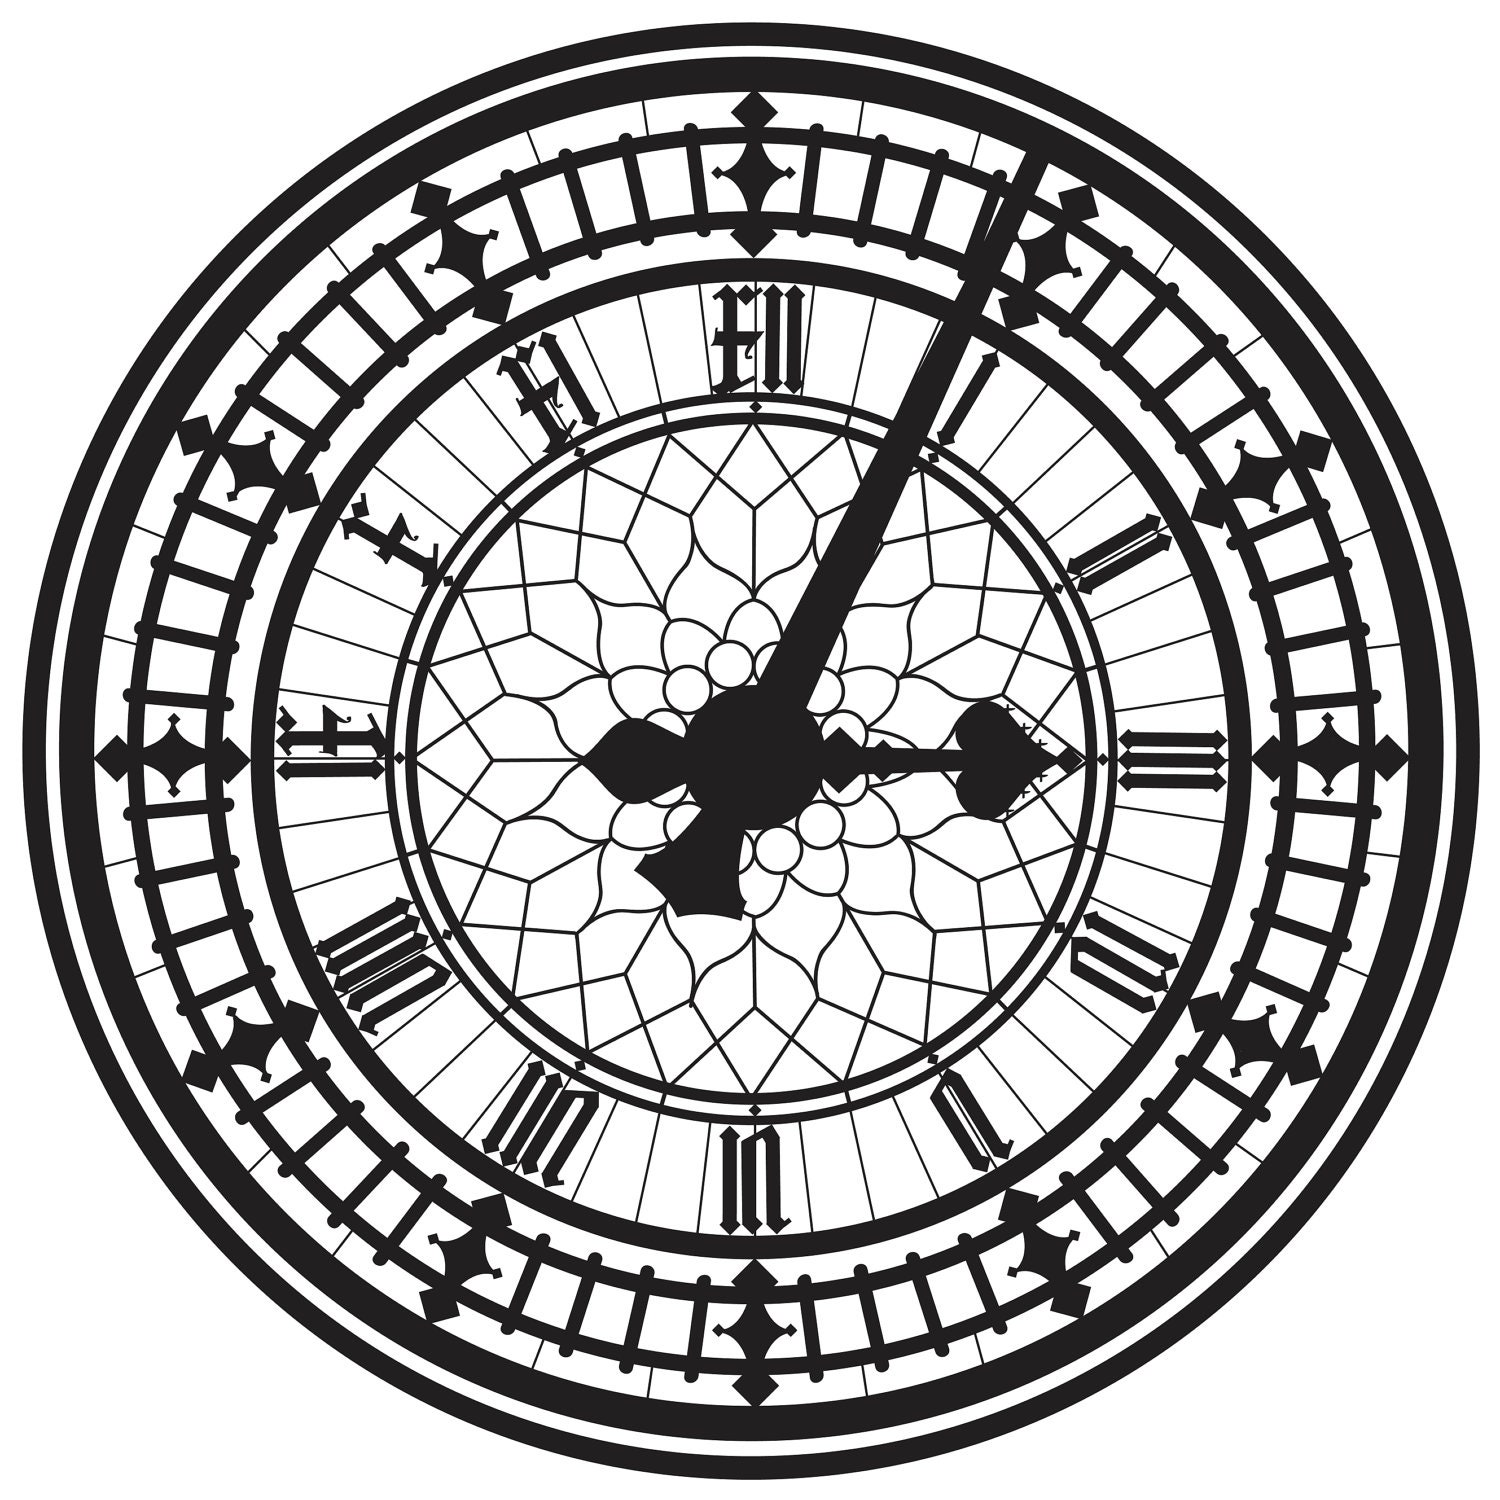 Big Ben Clock Face, Vector Image – Paint The Moment